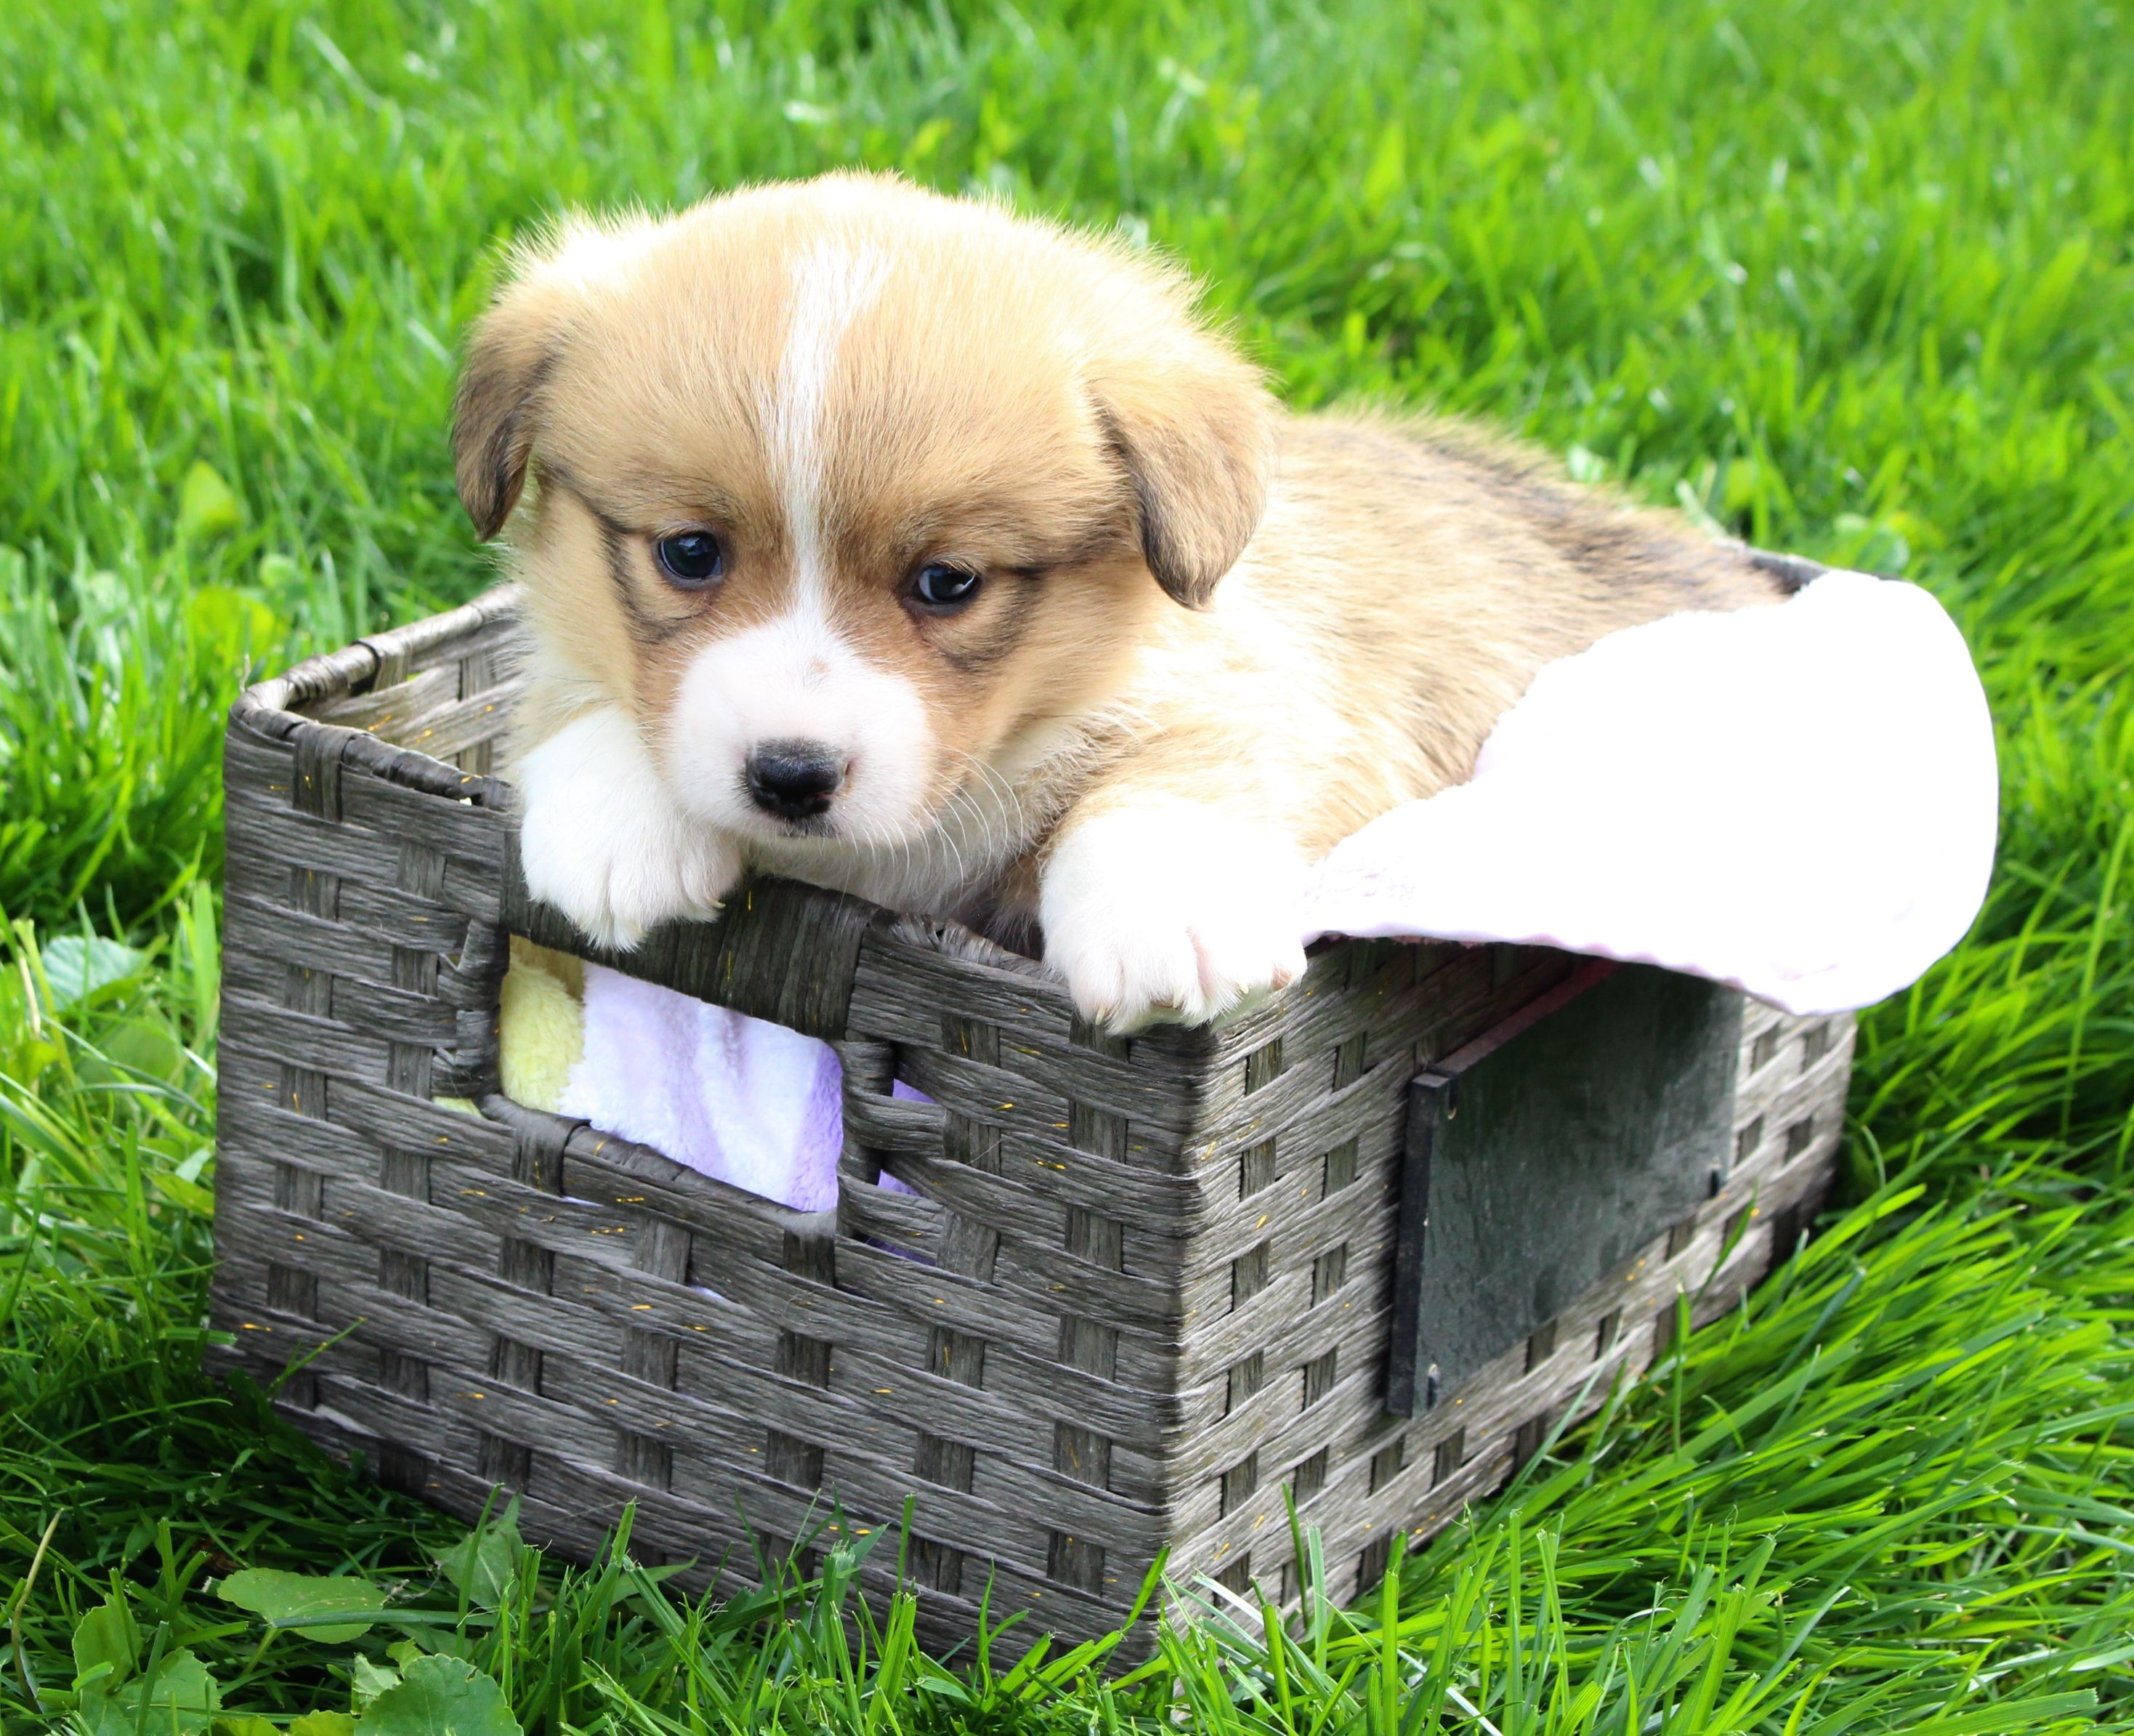 Meet Max Akc Male Corgi Puppy Dm Free Harlan Indiana Find Cute Pembroke Welsh Corgi Puppies Dogs And Breeders At Corgi Pembroke Welsh Corgi Corgi Puppy